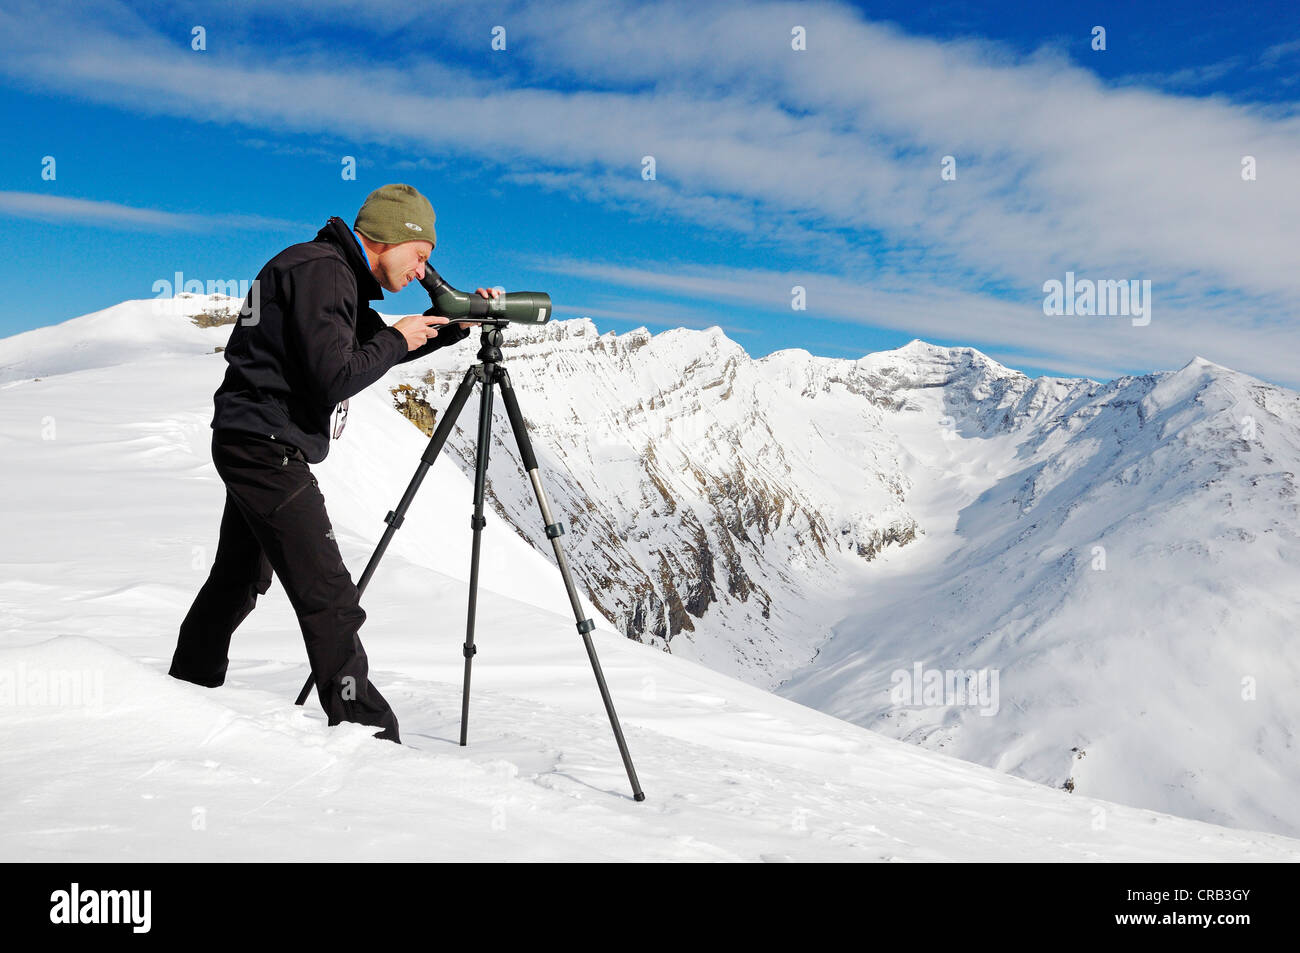 National Park Ranger looking through a spotting scope, Mount Schareck, National Park Hohe Tauern, Carinthia, Austria, - Stock Image